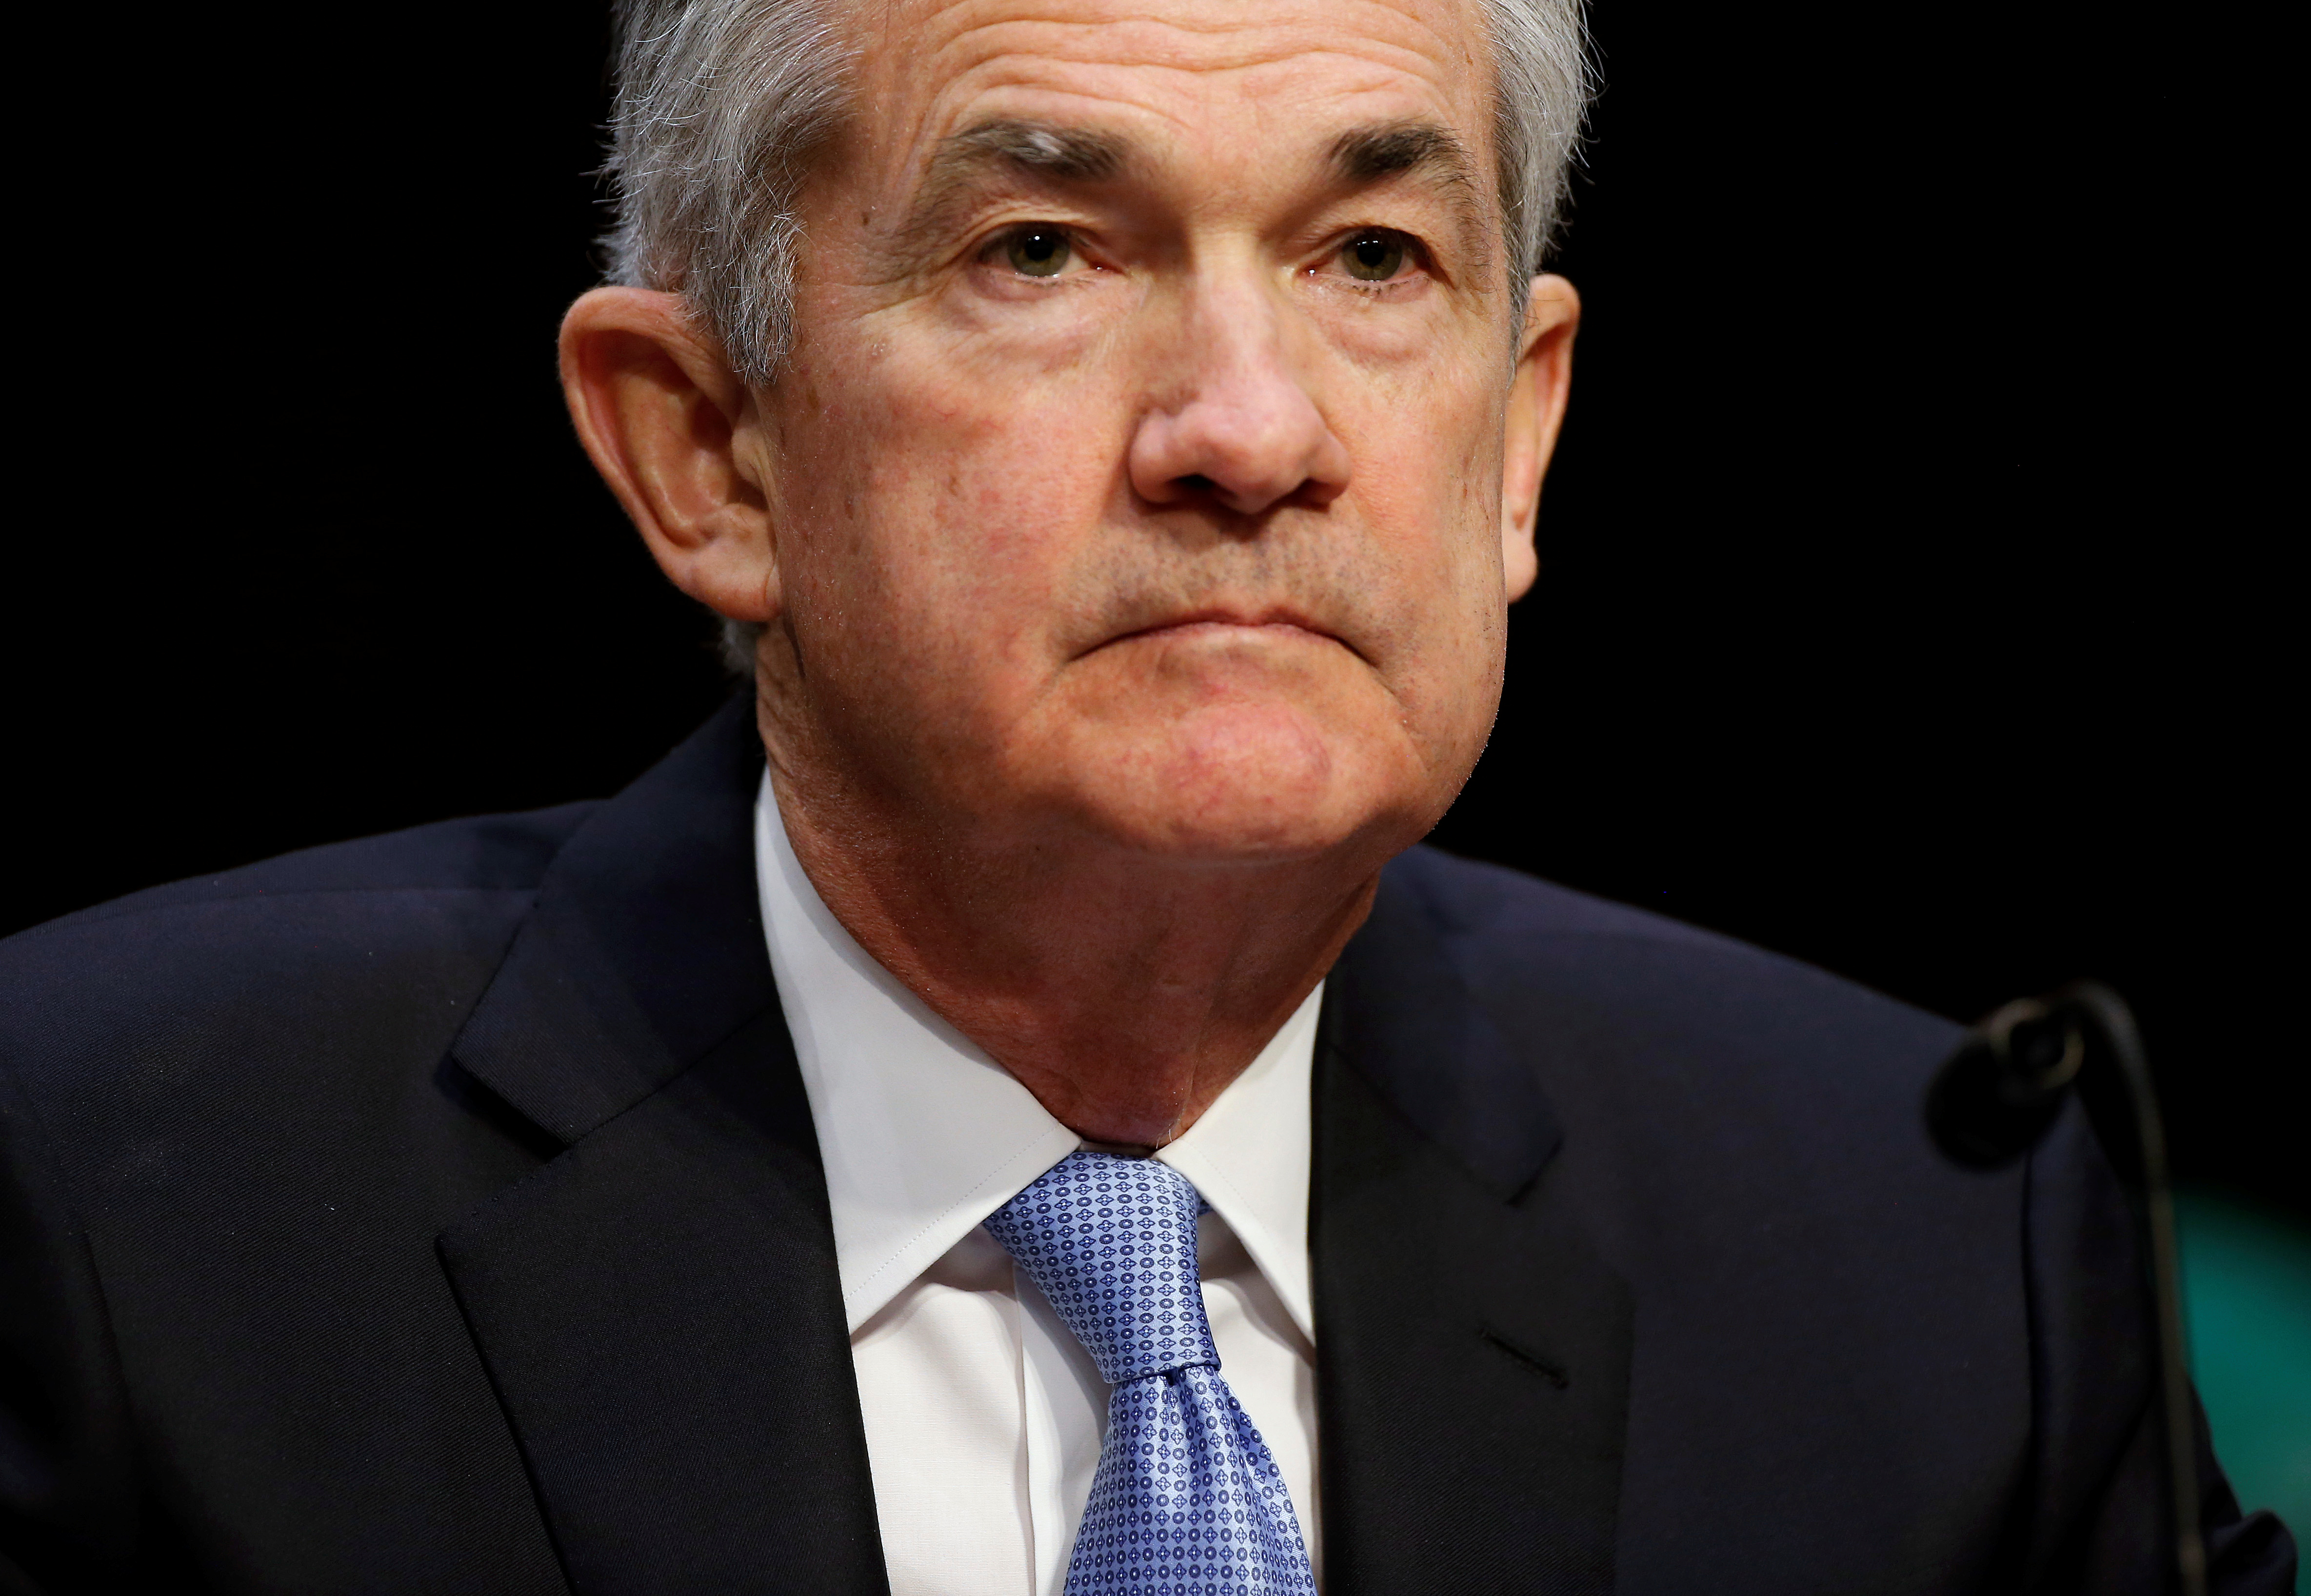 Fed's Powell: Best way forward is to keep raising rates